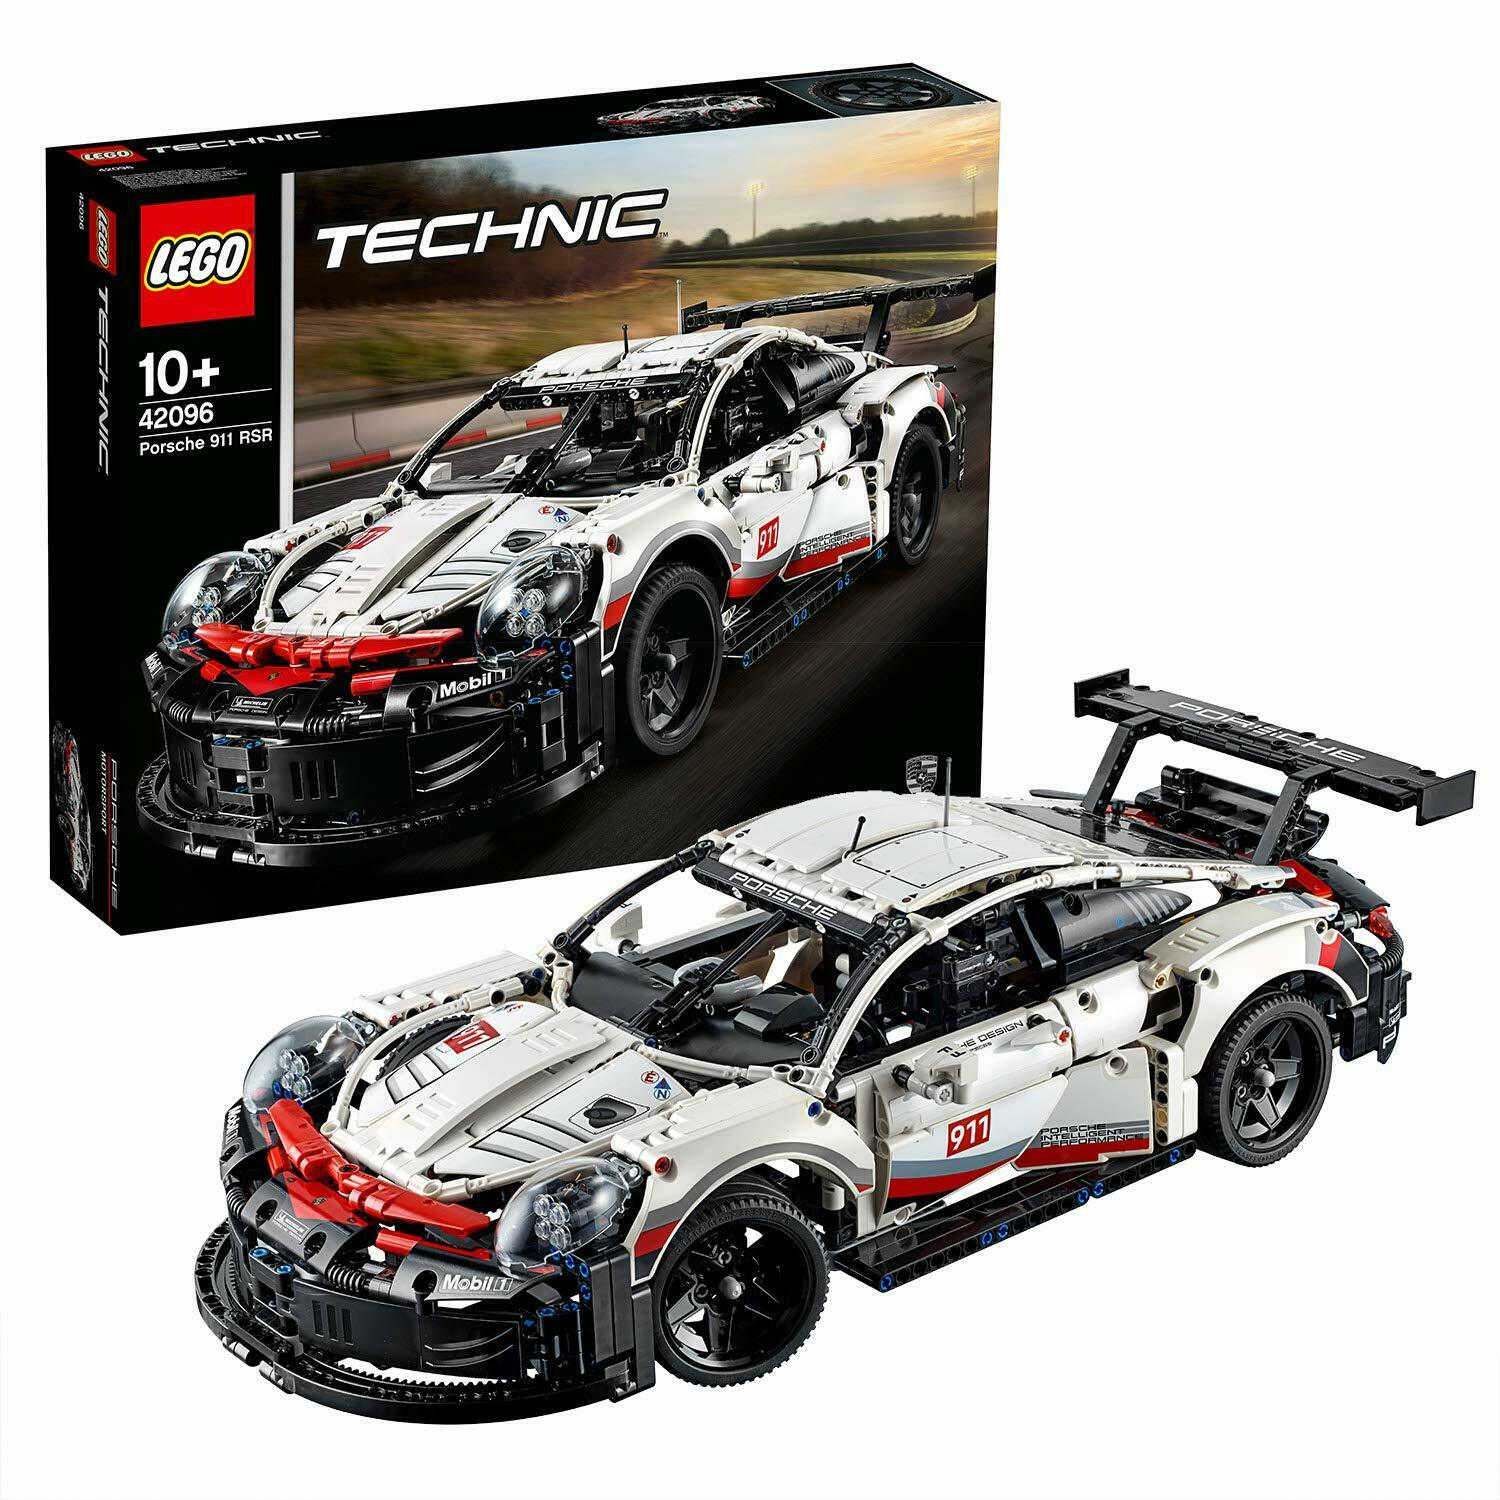 LEGO 42096 Technic Porsche 911 RSR  GT Model Race voiture Advanced Construction Kit  70% de réduction